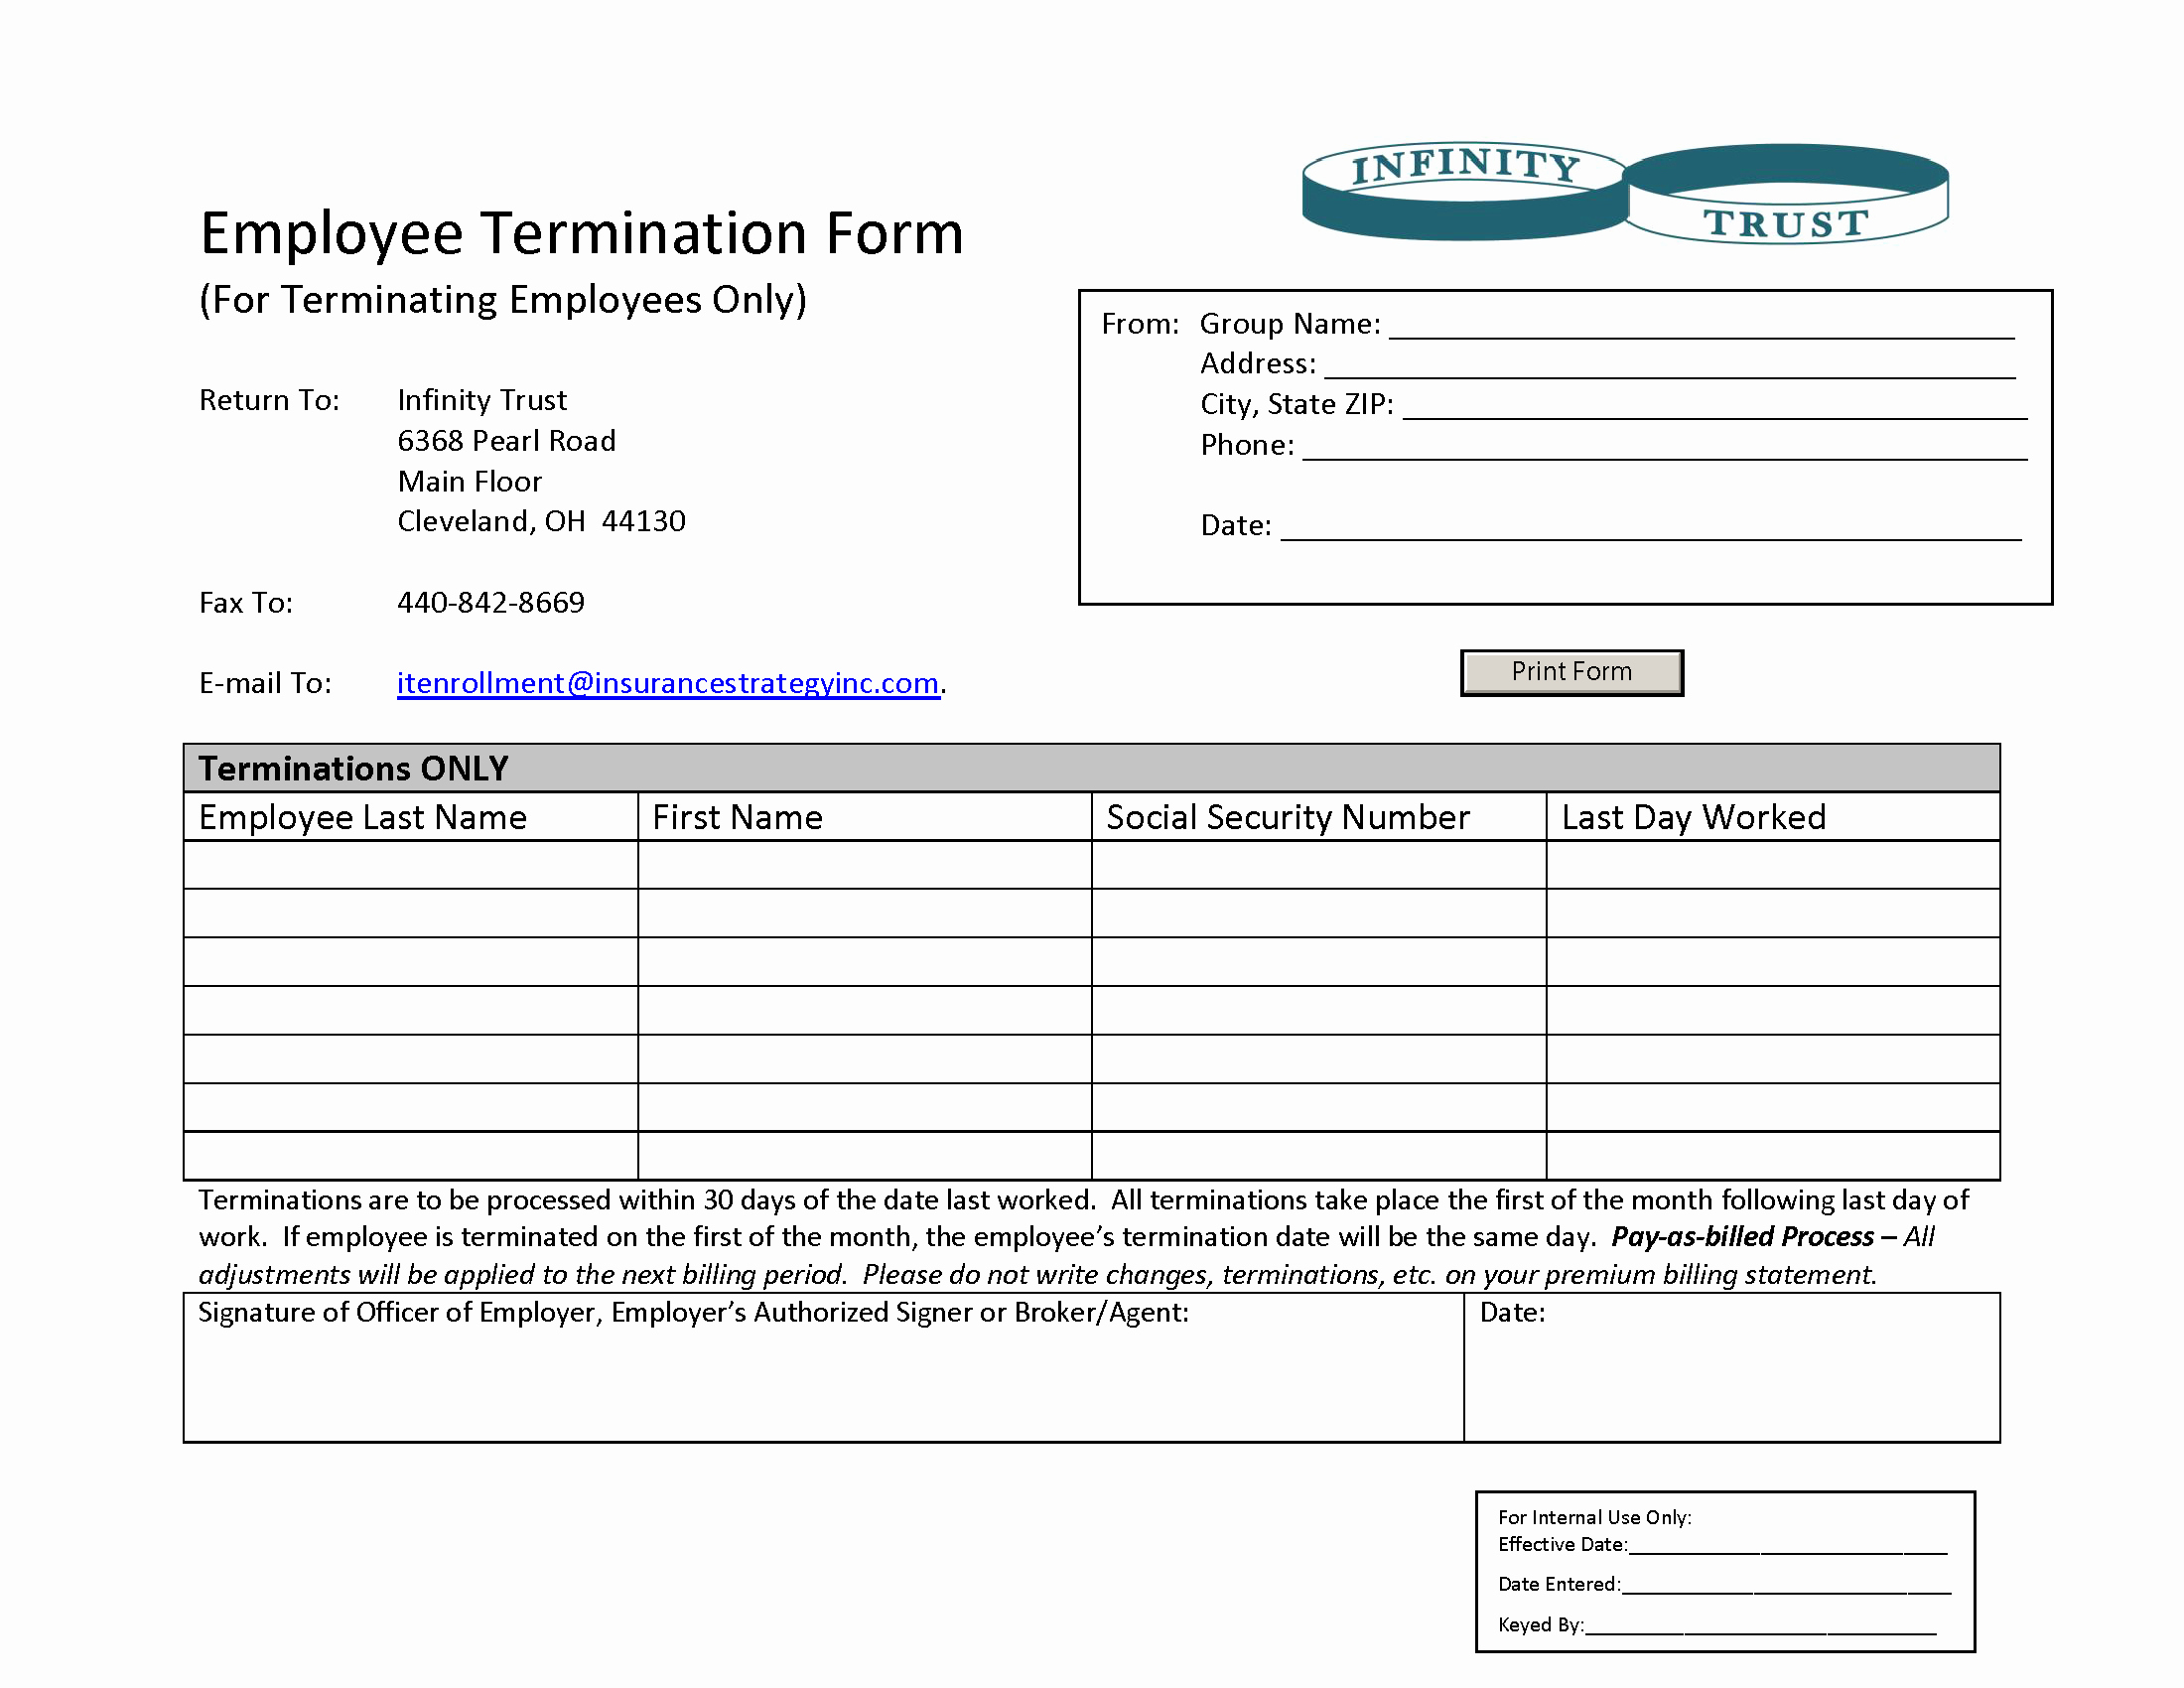 Employee Termination form Pdf Luxury Insurance Strategy Inc